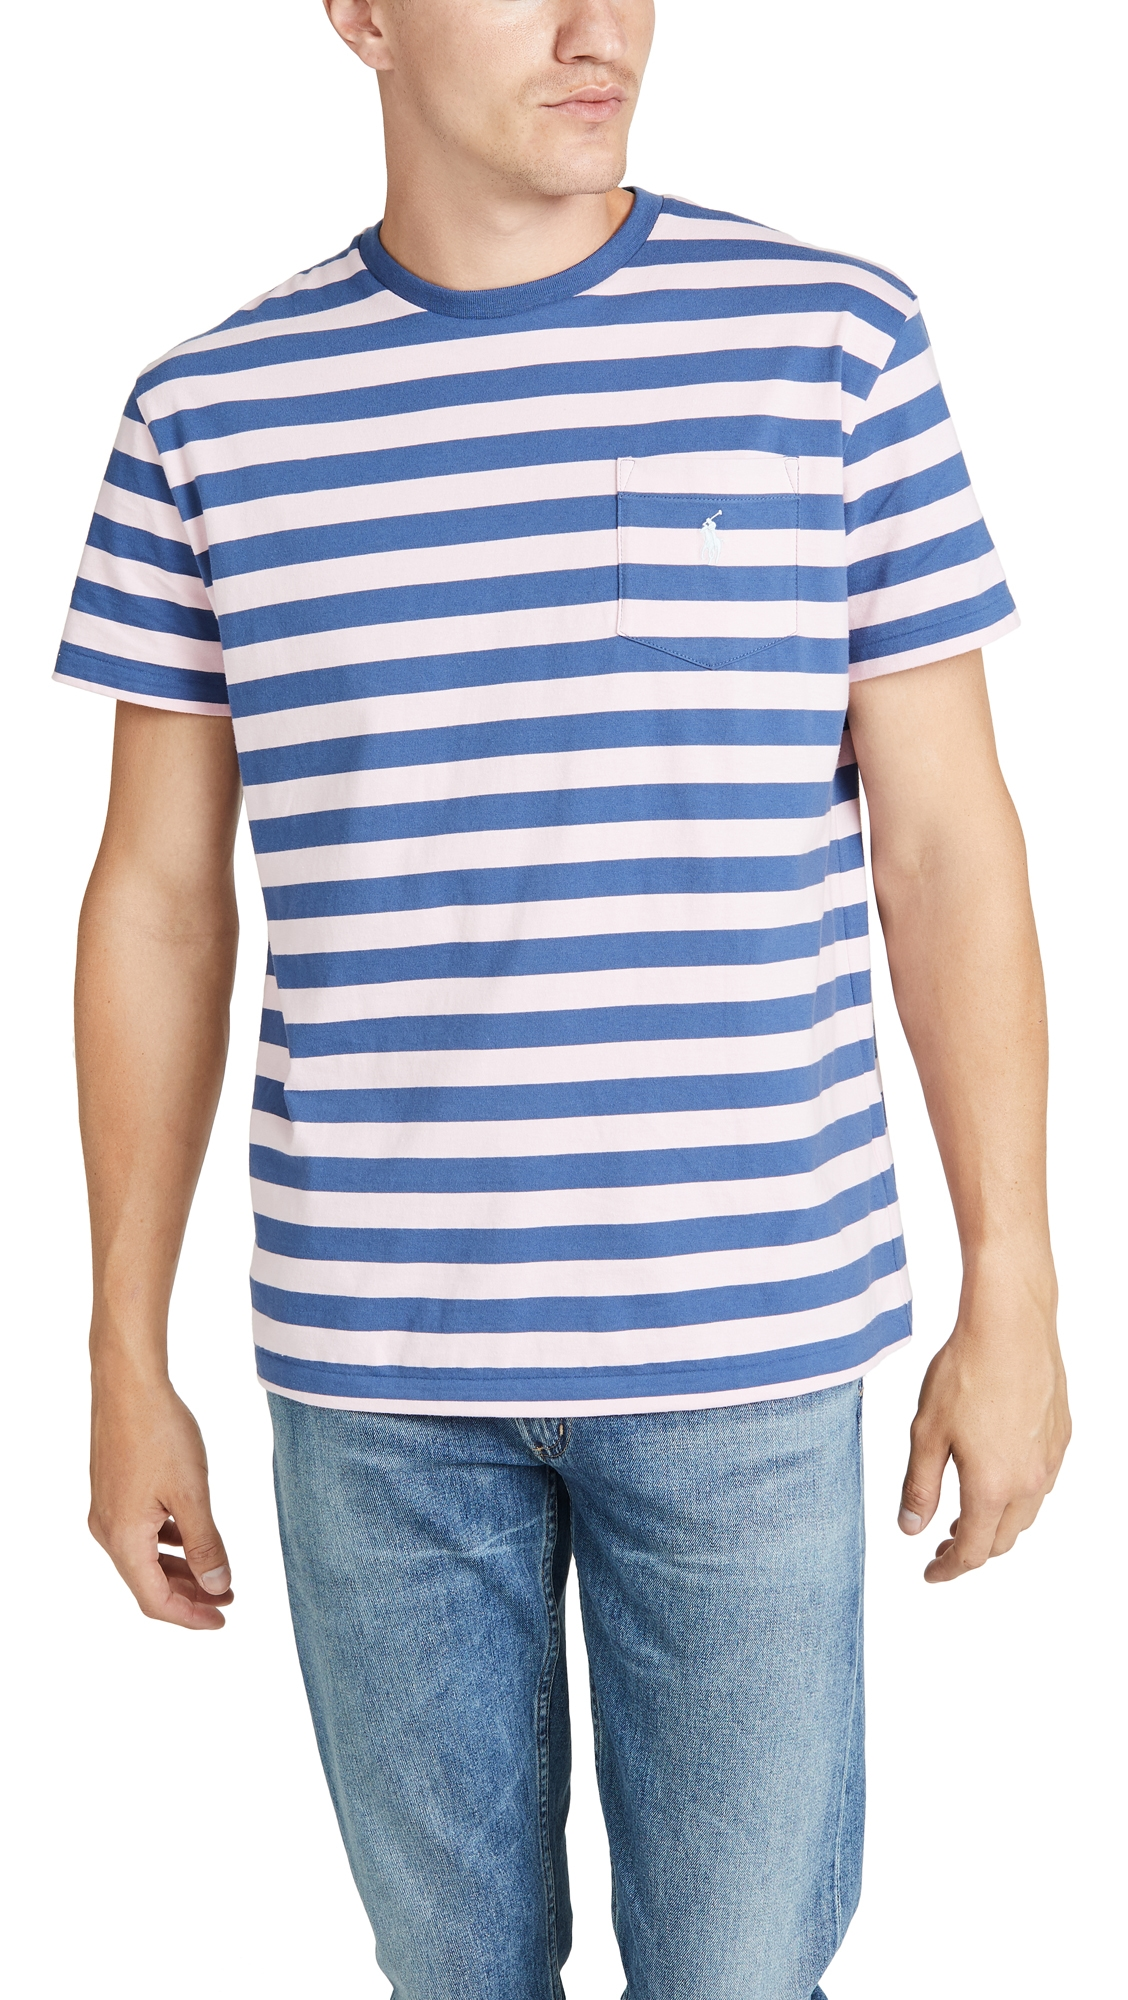 108d60d7 Polo Ralph Lauren Short Sleeve Striped Pocket Tee In Pink Multi ...